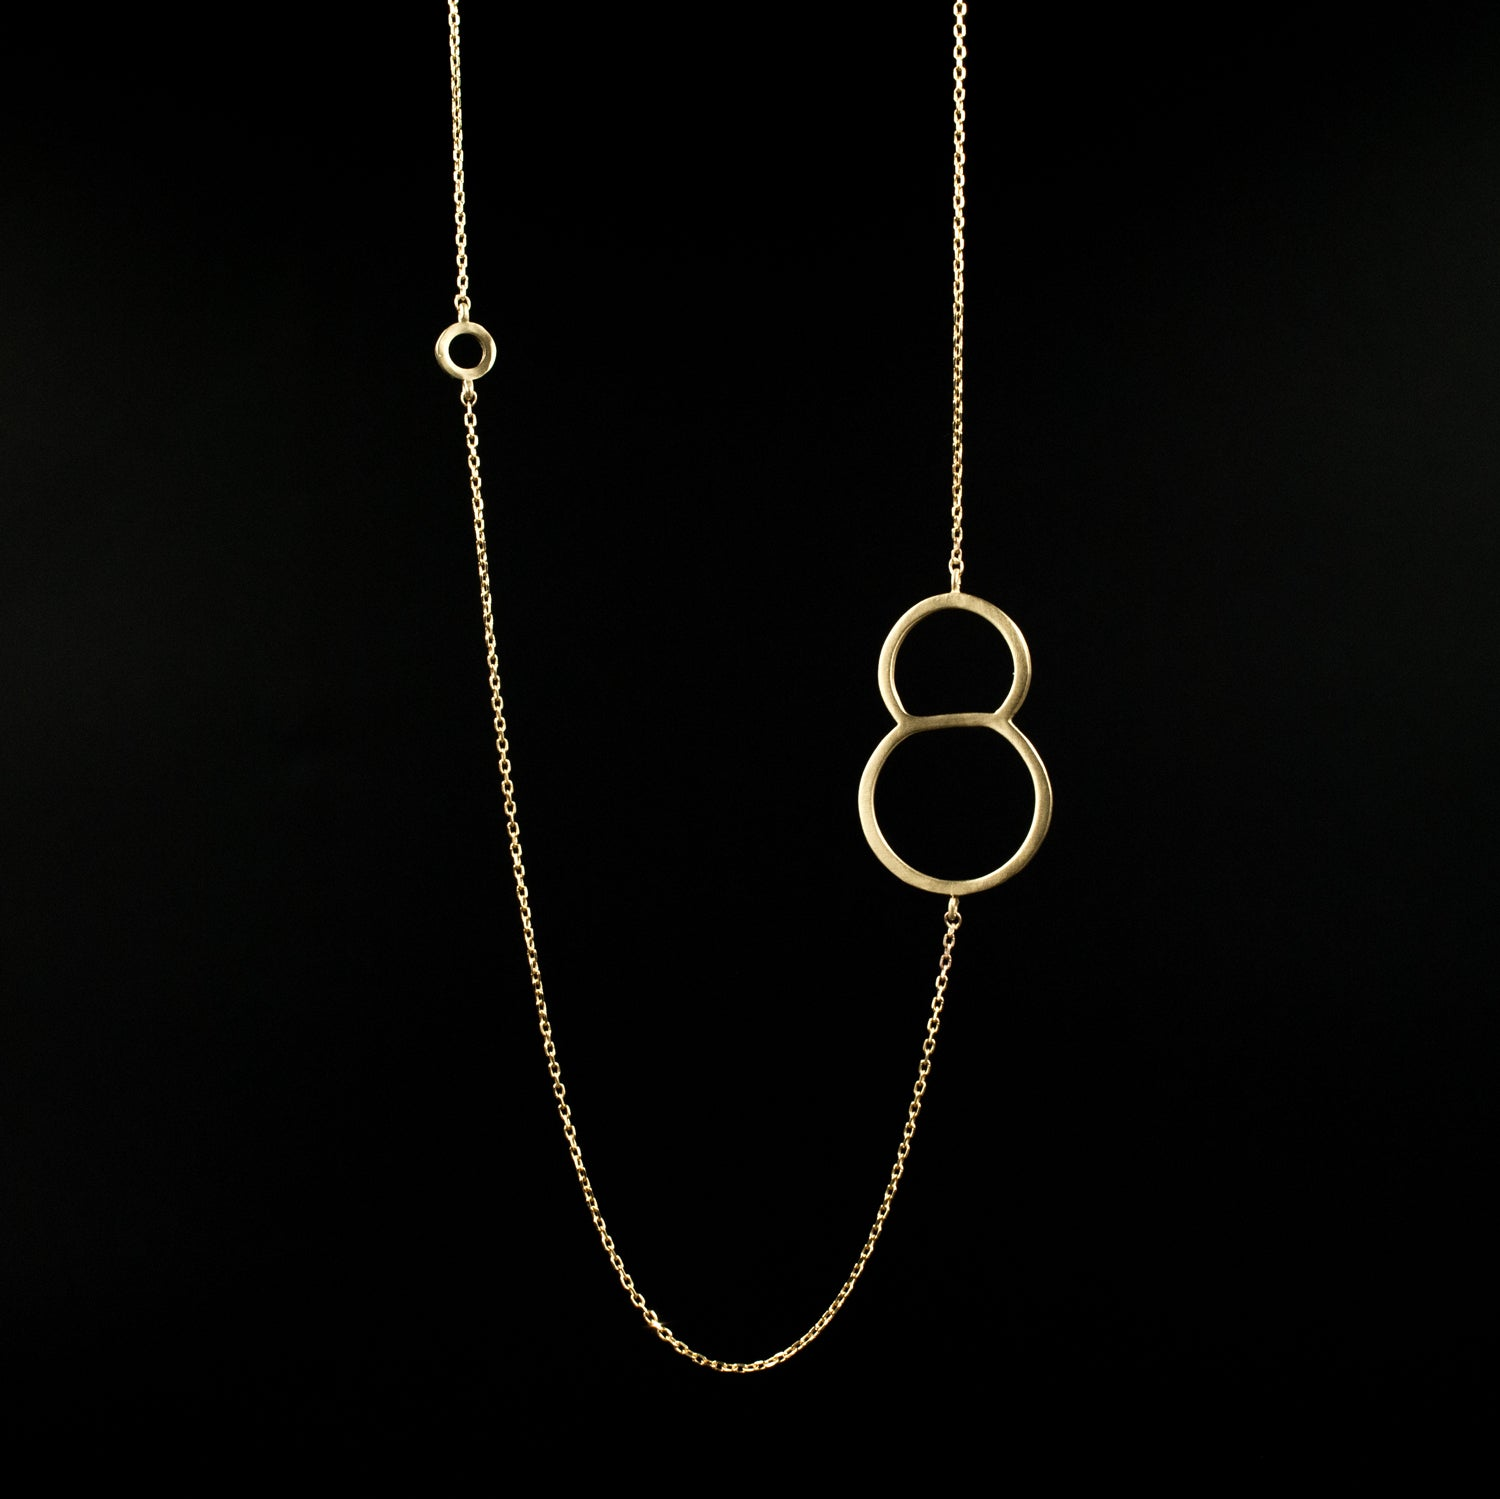 Sexy Eight Necklace - Designed by Moshik Nadav Fashion Typography